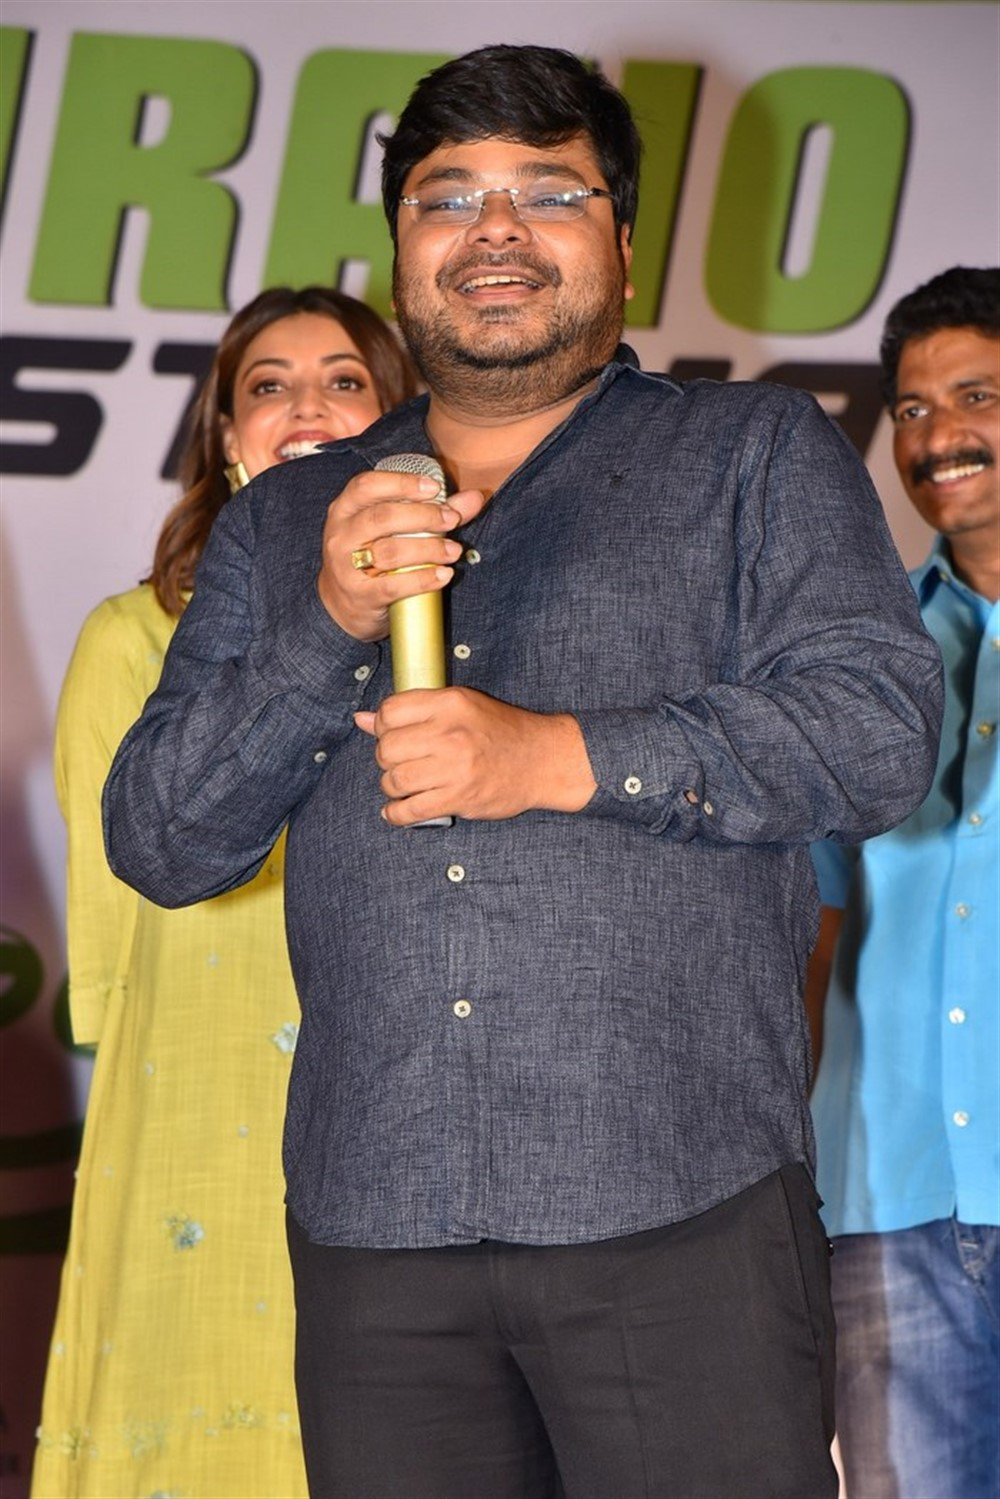 Abhishek Agarwal @ Sita Movie Khajuraho Beer Fest 2019 Photos